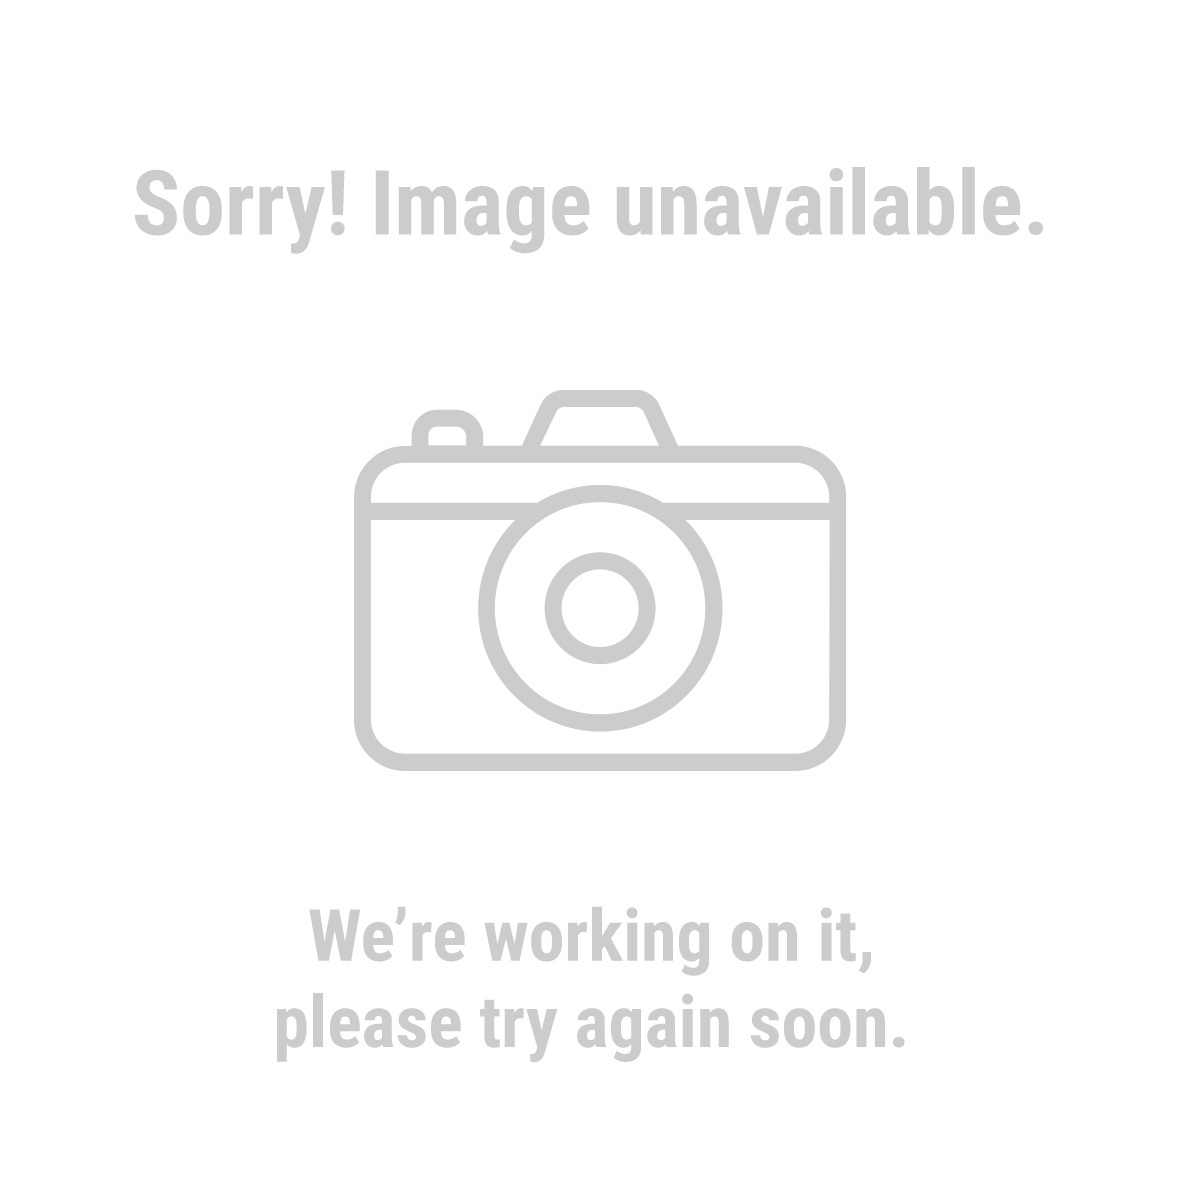 Warrior 1903 7 Piece Forstner Bit Set